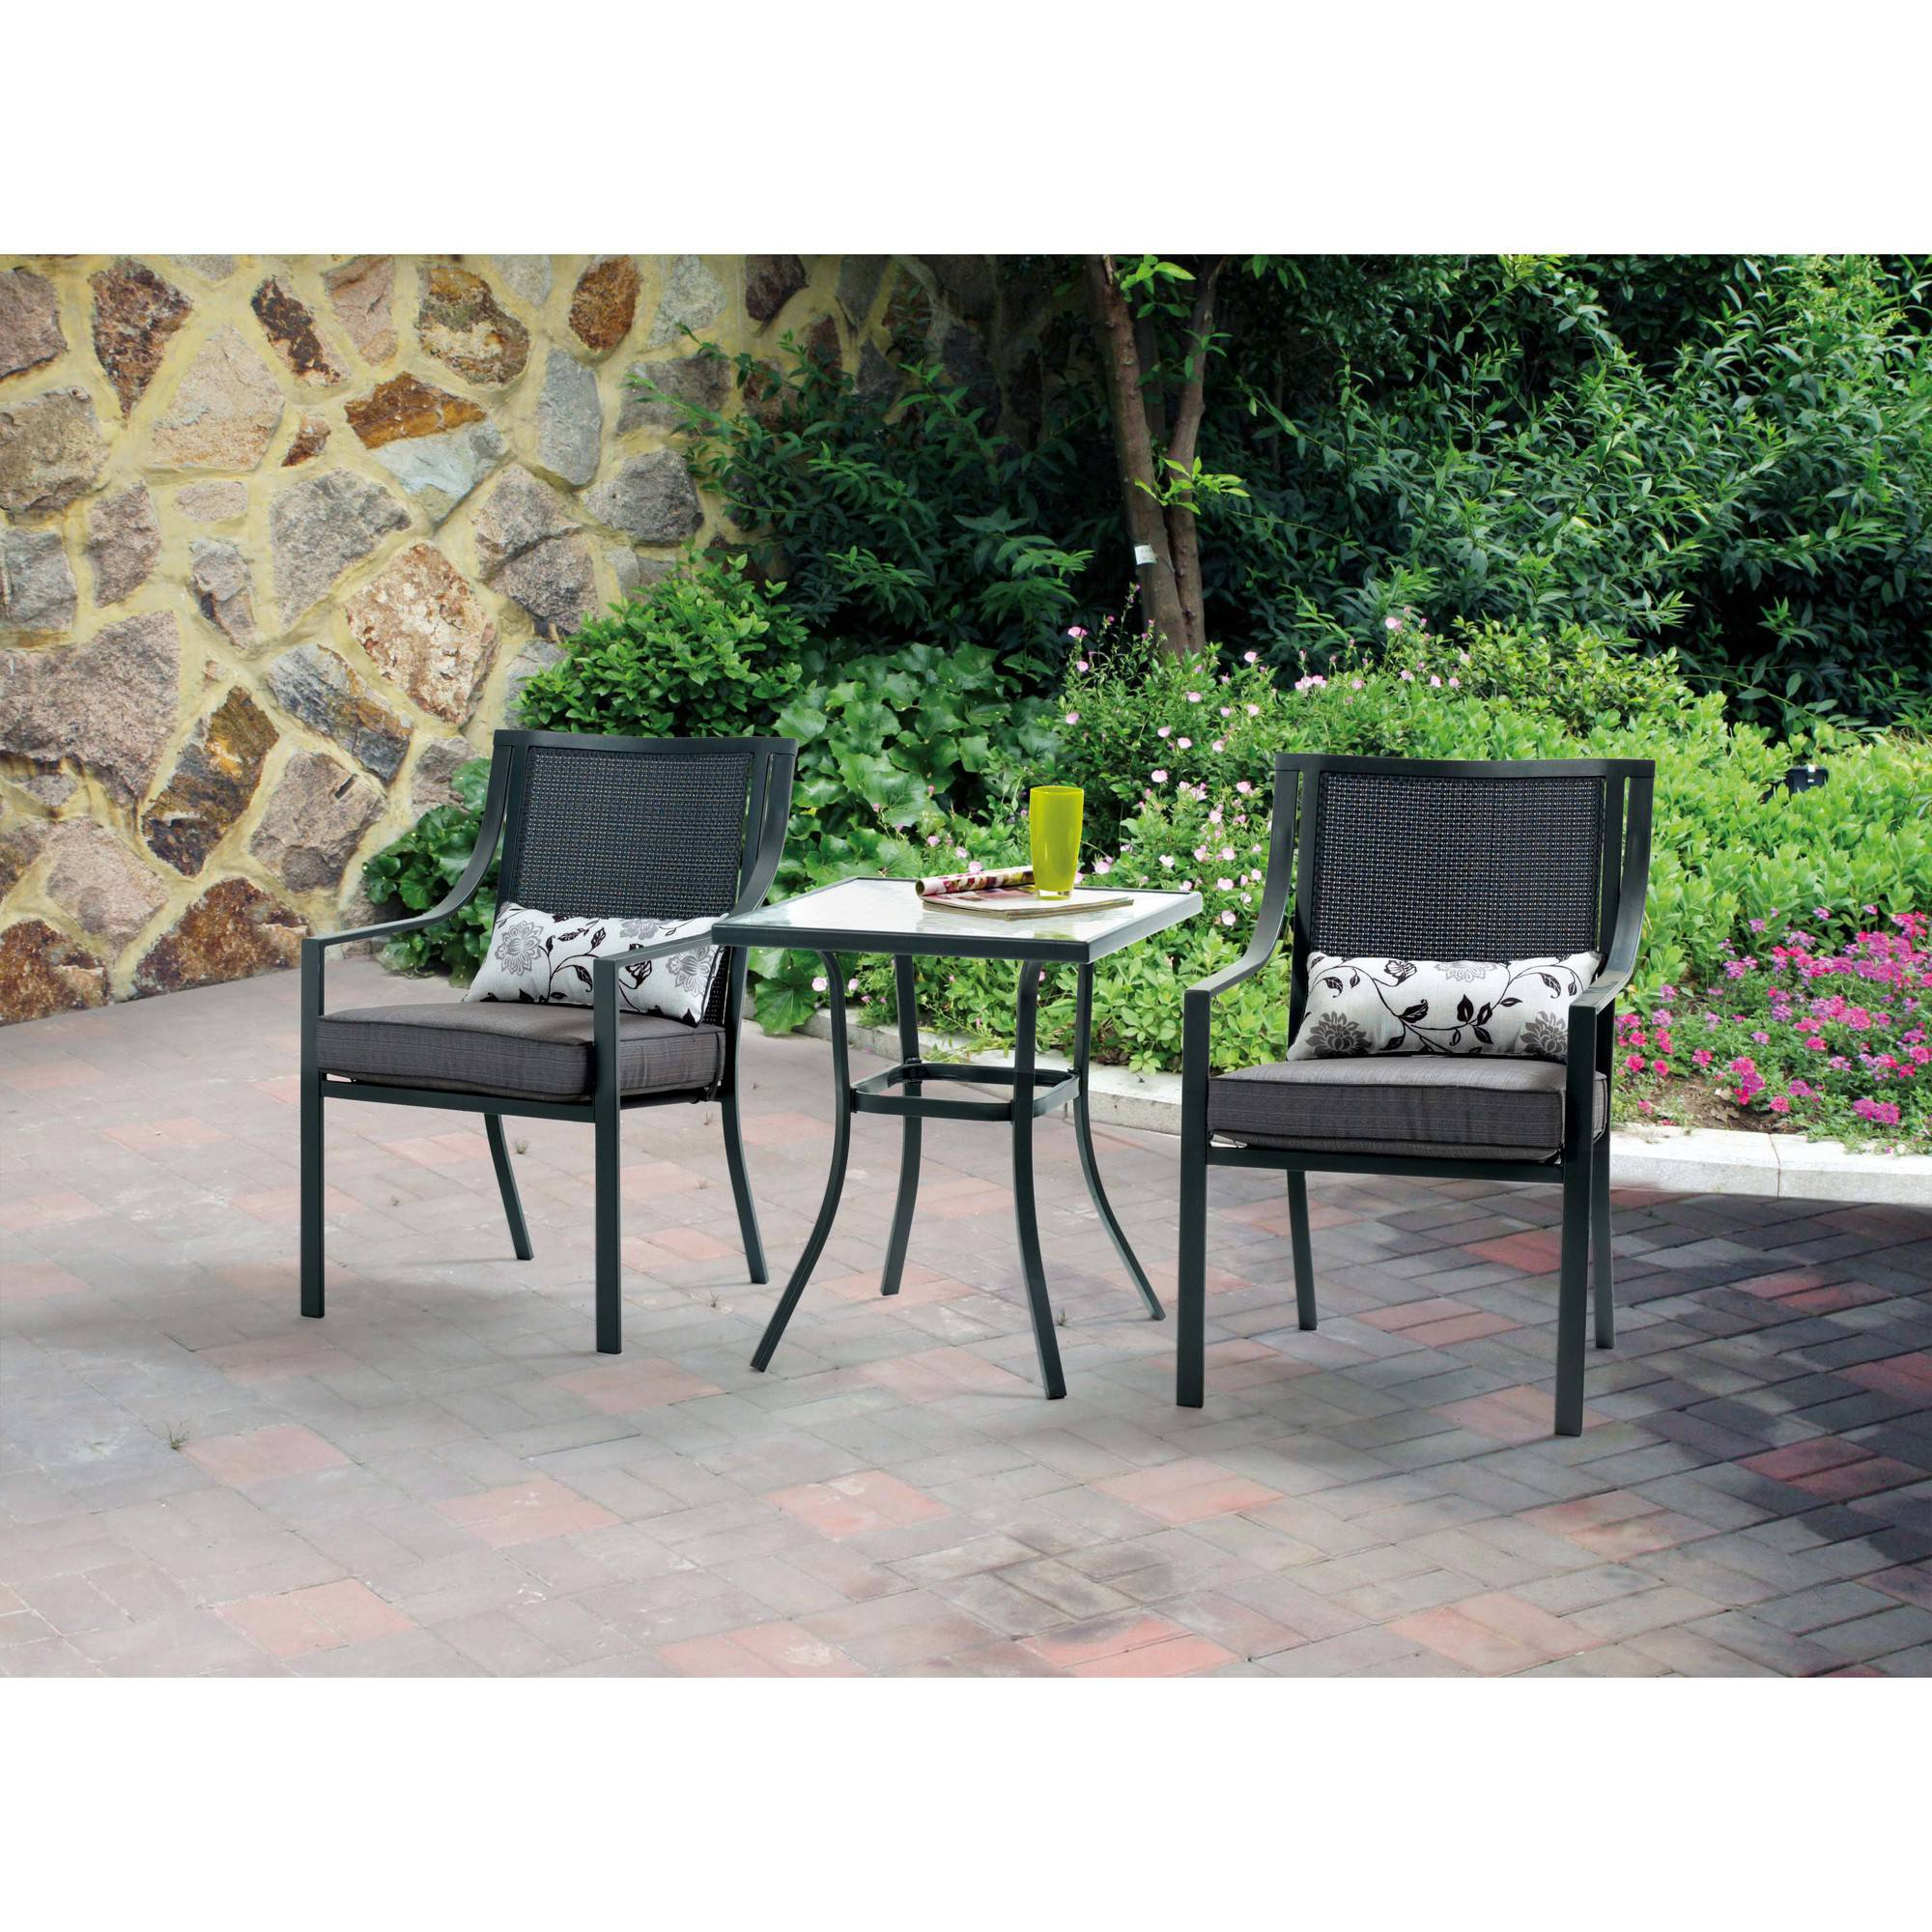 Mainstays Wesley Creek Piece Bistro Set With Swivel Chairs - Bistro table set